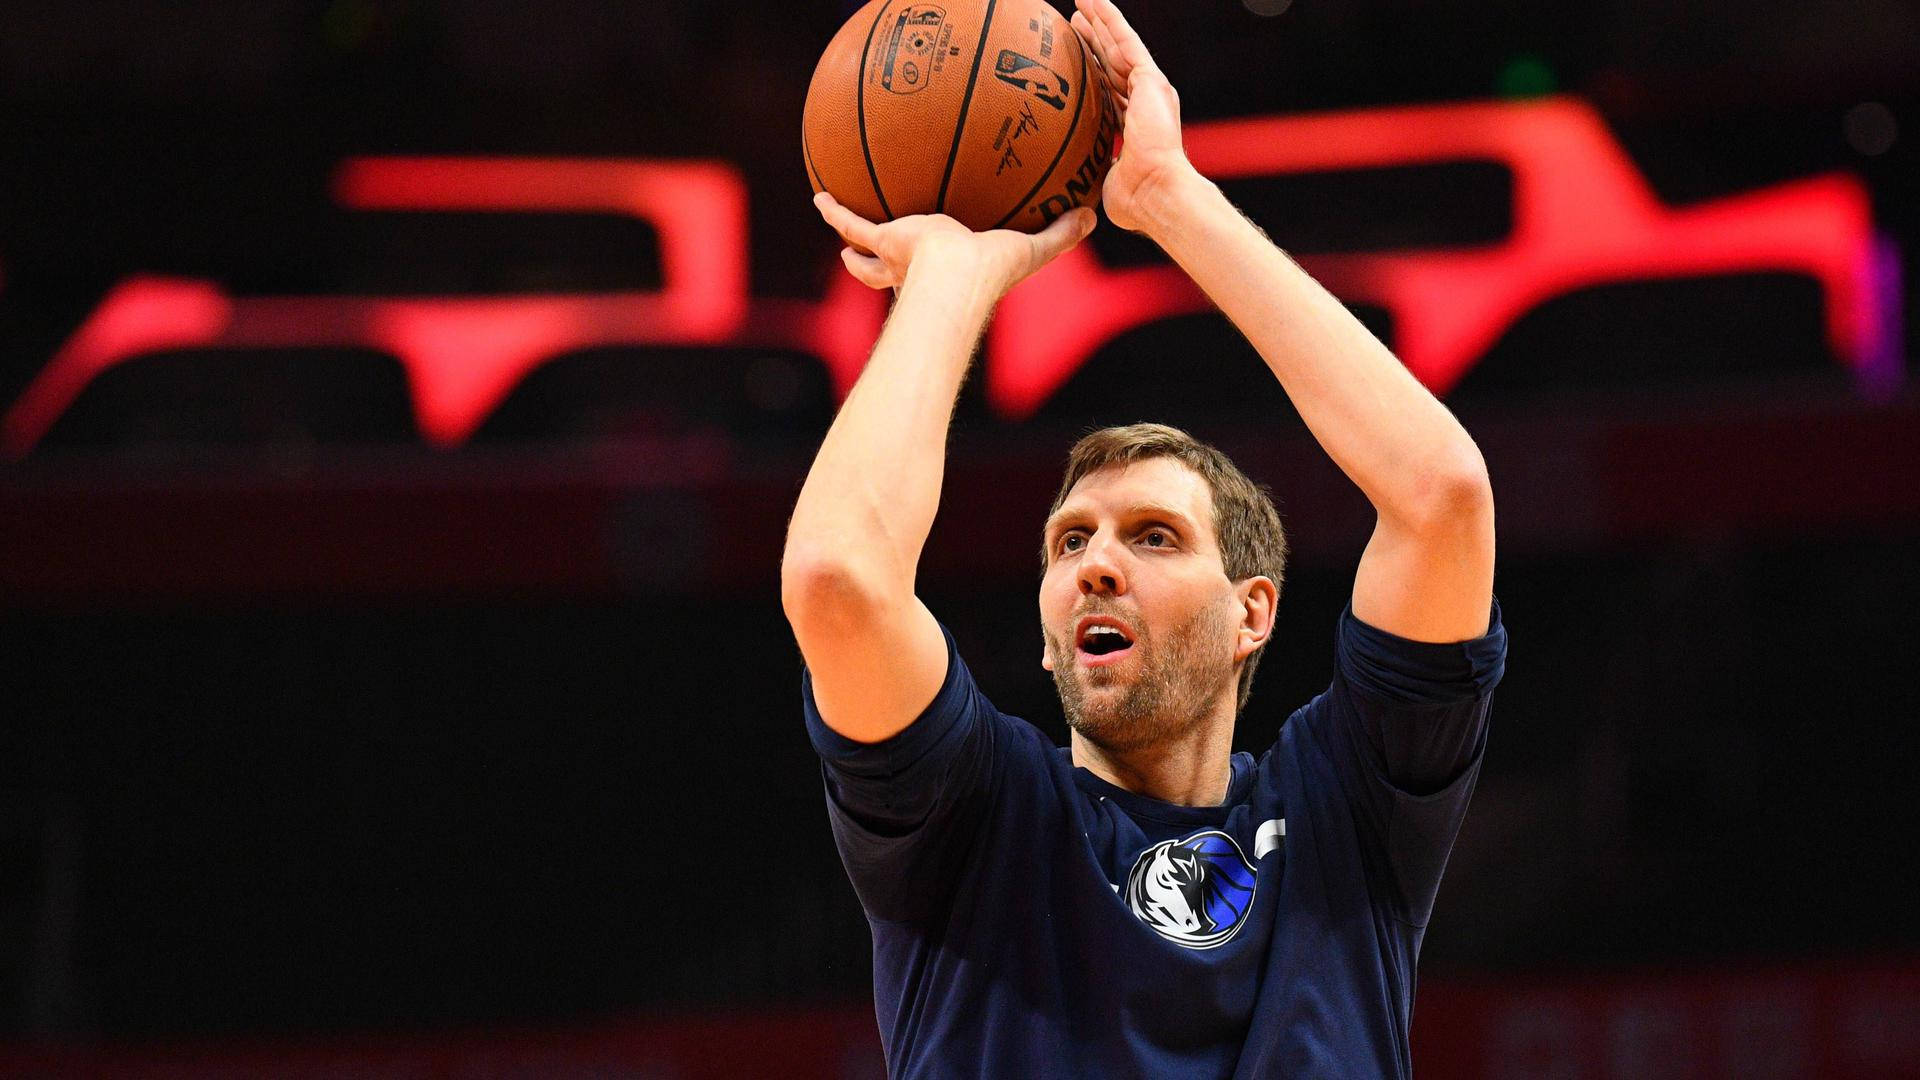 LOS ANGELES, CA - FEBRUARY 25: Dallas Mavericks Forward Dirk Nowitzki (41) shoots before a NBA Basketball Herren USA game between the Dallas Mavericks and the Los Angeles Clippers on February 25, 2019 at STAPLES Center in Los Angeles, CA. (Photo by Brian Rothmuller/Icon Sportswire) NBA: FEB 25 Mavericks at Clippers PUBLICATIONxINxGERxSUIxAUTxHUNxRUSxSWExNORxDENxONLY Icon19022527003